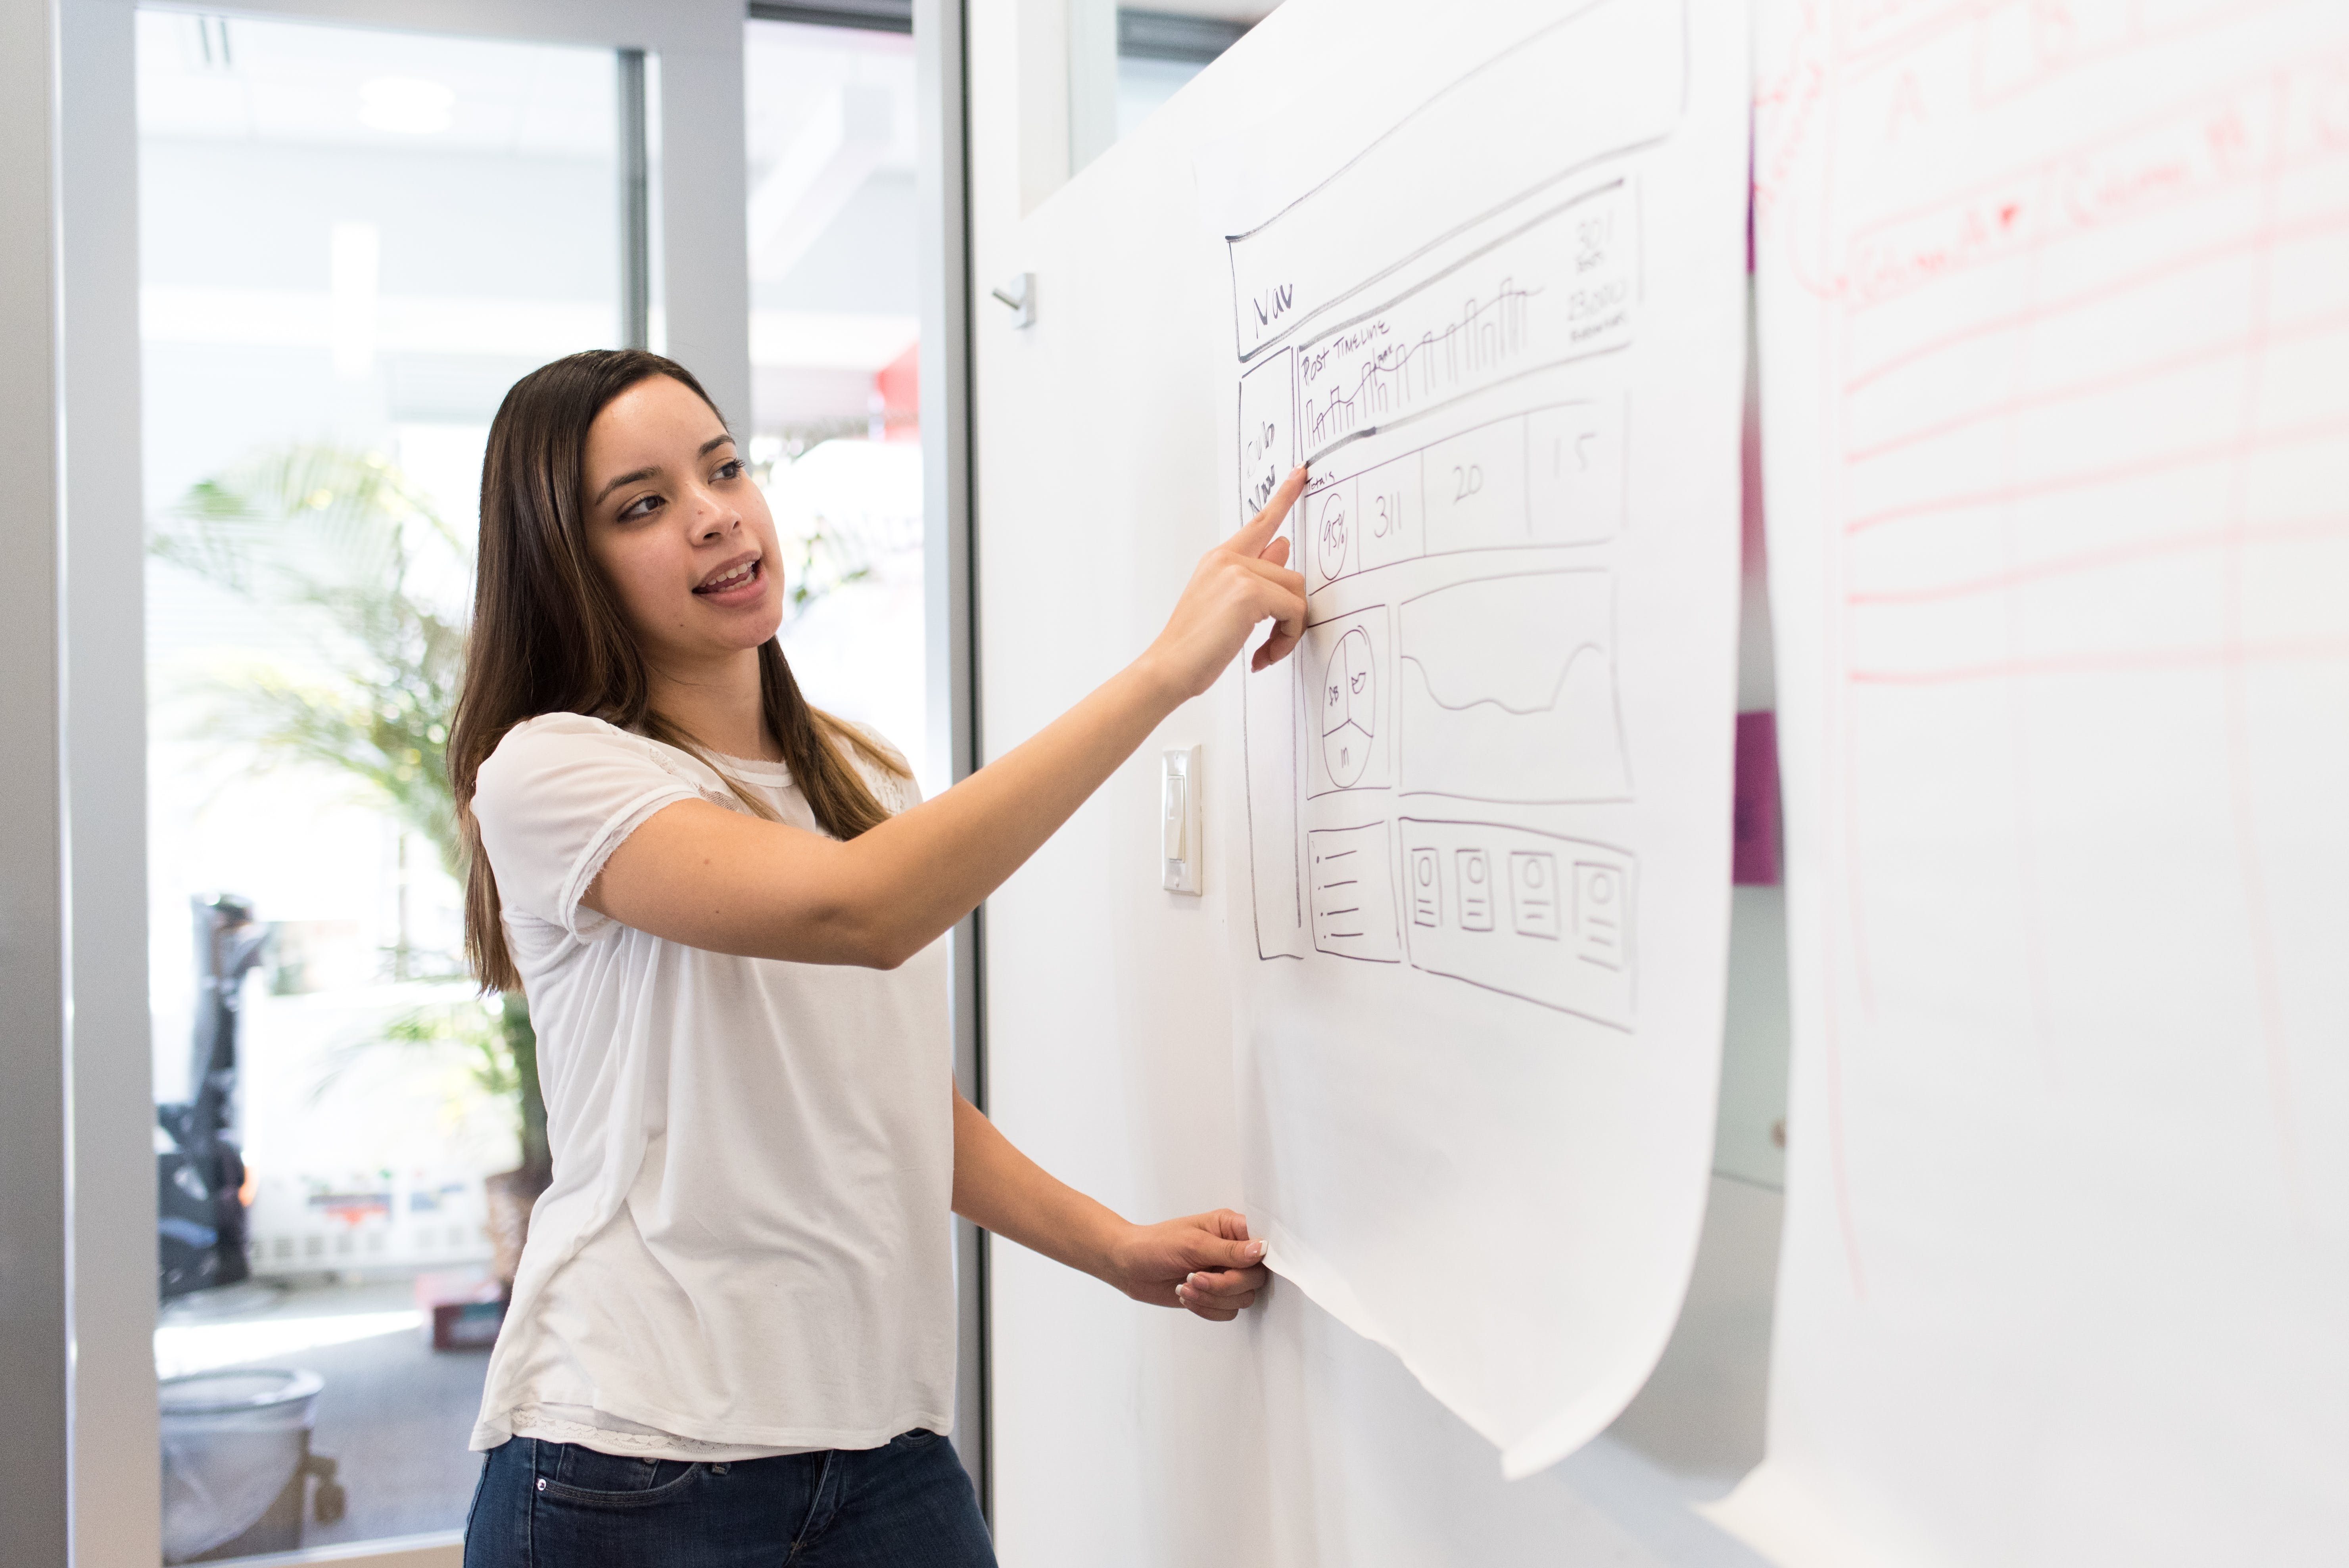 Woman Wearing White Shirt Standing Beside White Board While Pointing on White Paper